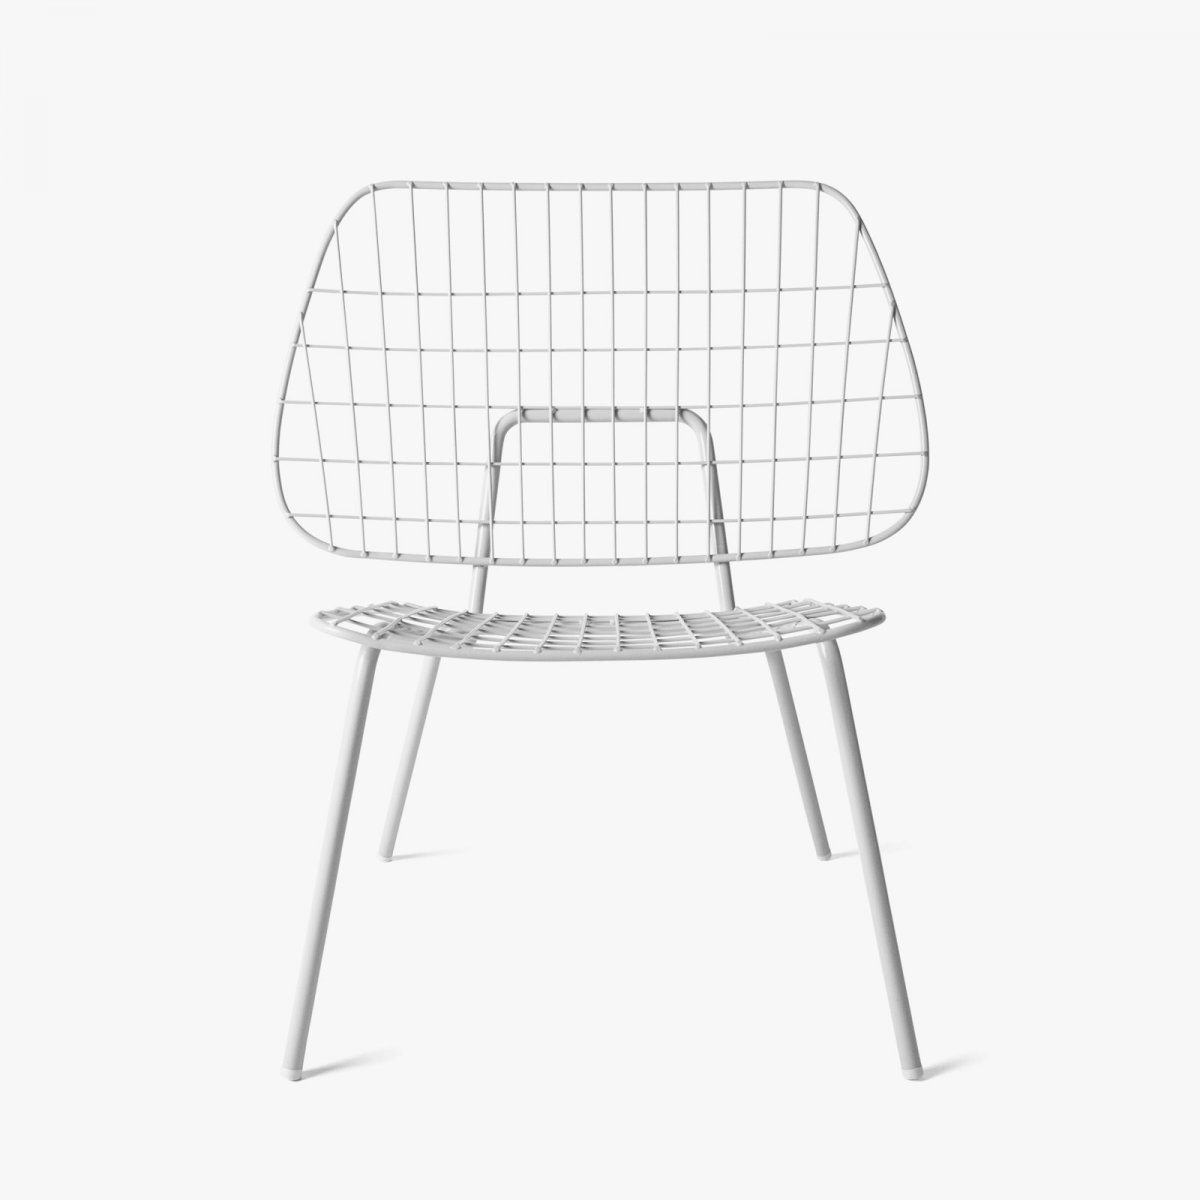 WM String Lounge Chair, white, front view.